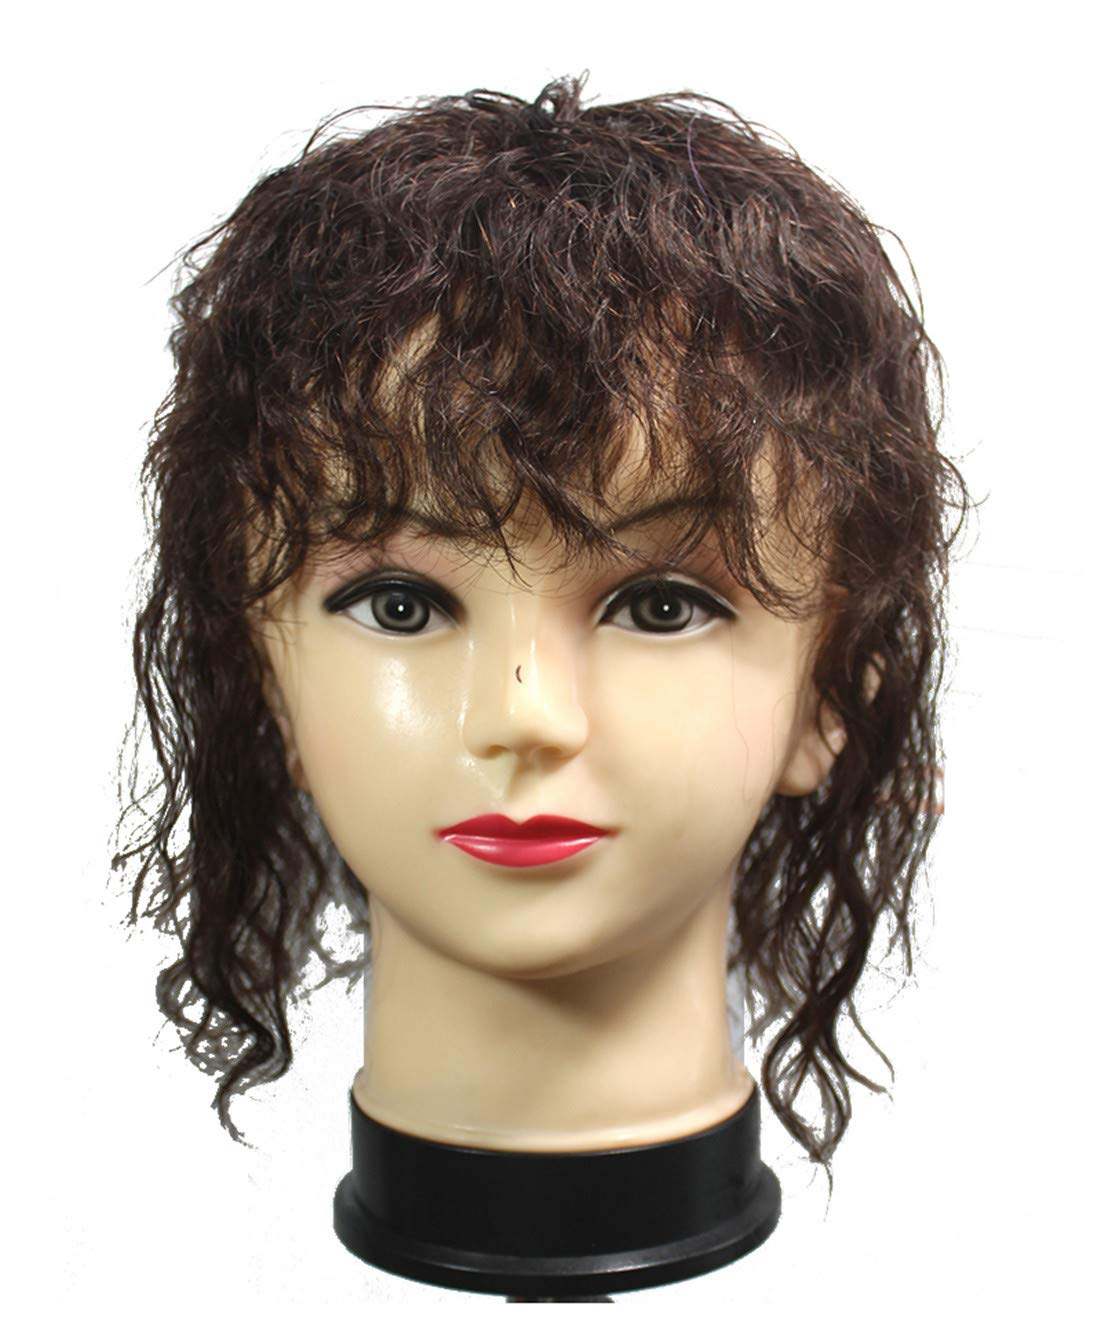 Las Vegas Mall Curly Human Hair Topper with Shipping included Bangs Clips Volume Ha Women in for